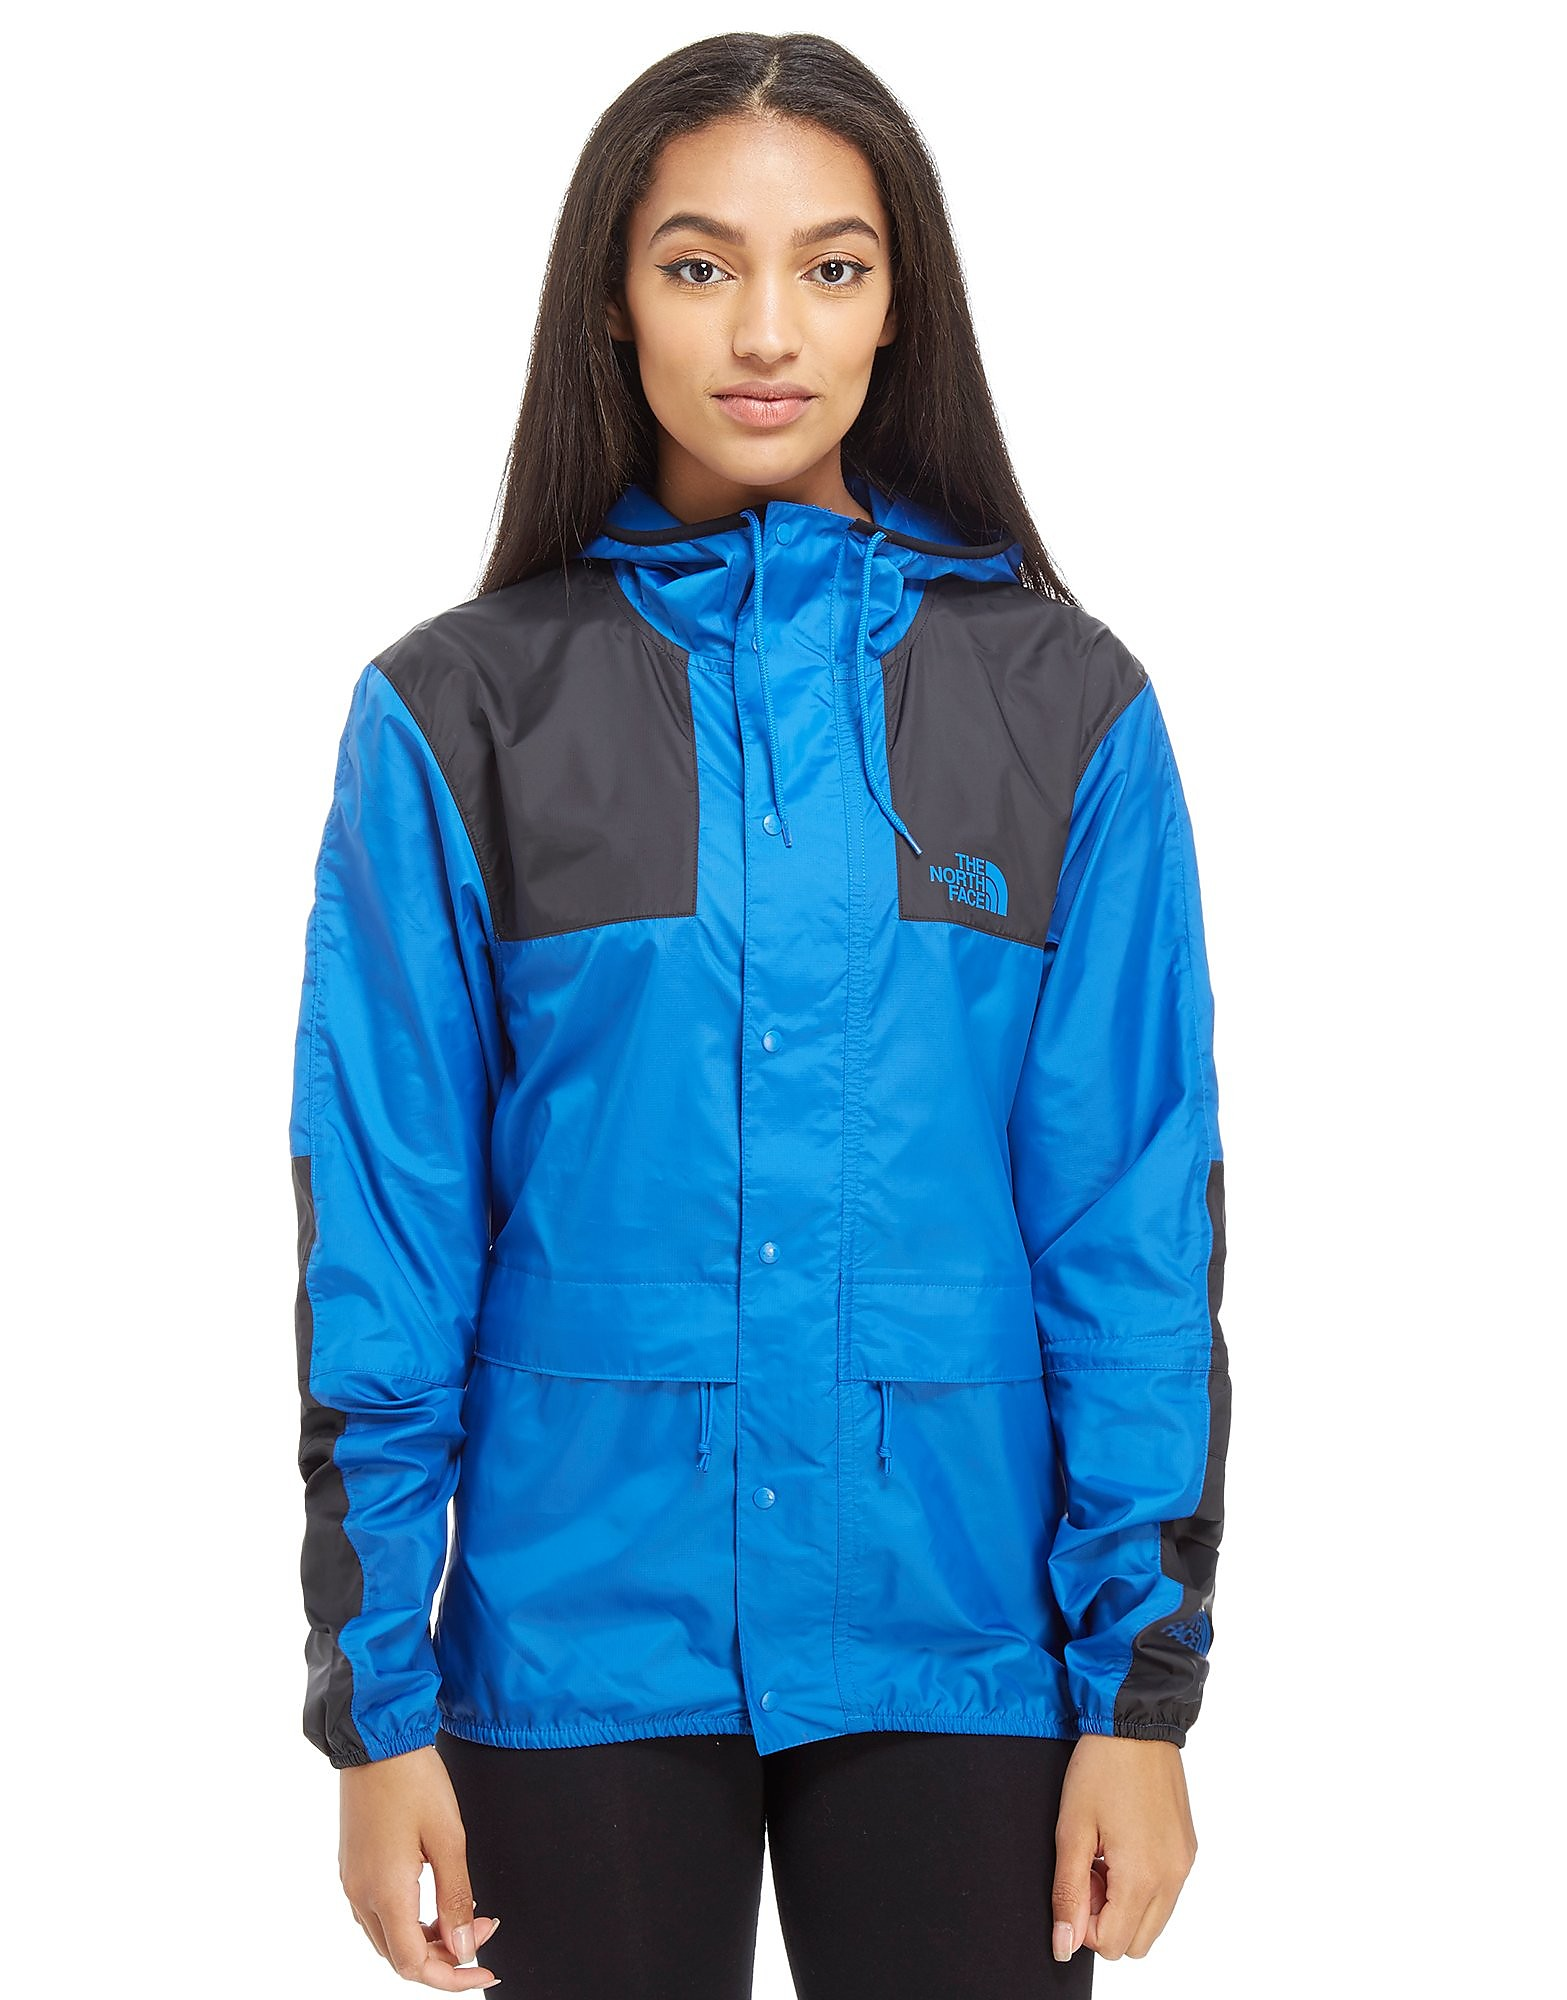 The North Face chaqueta 1985 Mountain